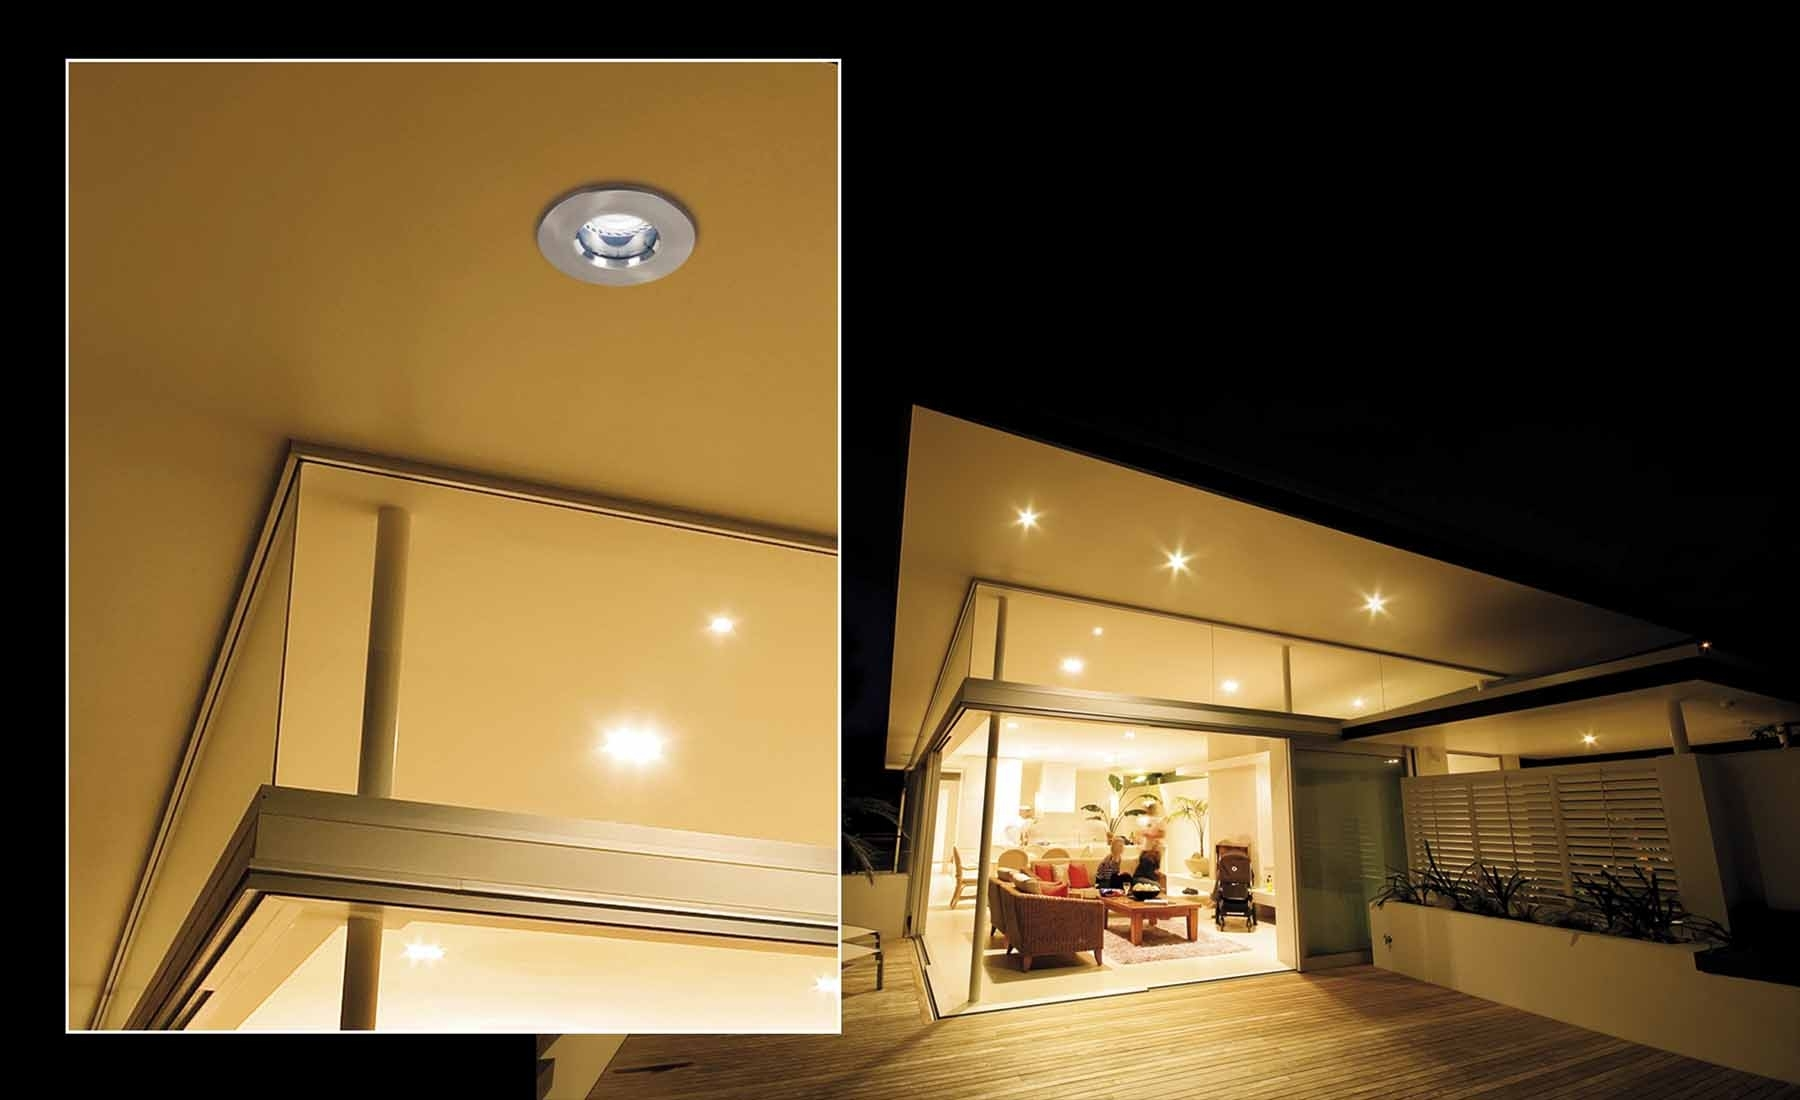 Outdoor Led Recessed Lighting – Outdoor Designs With Regard To Outdoor Led Ceiling Lights (View 12 of 15)